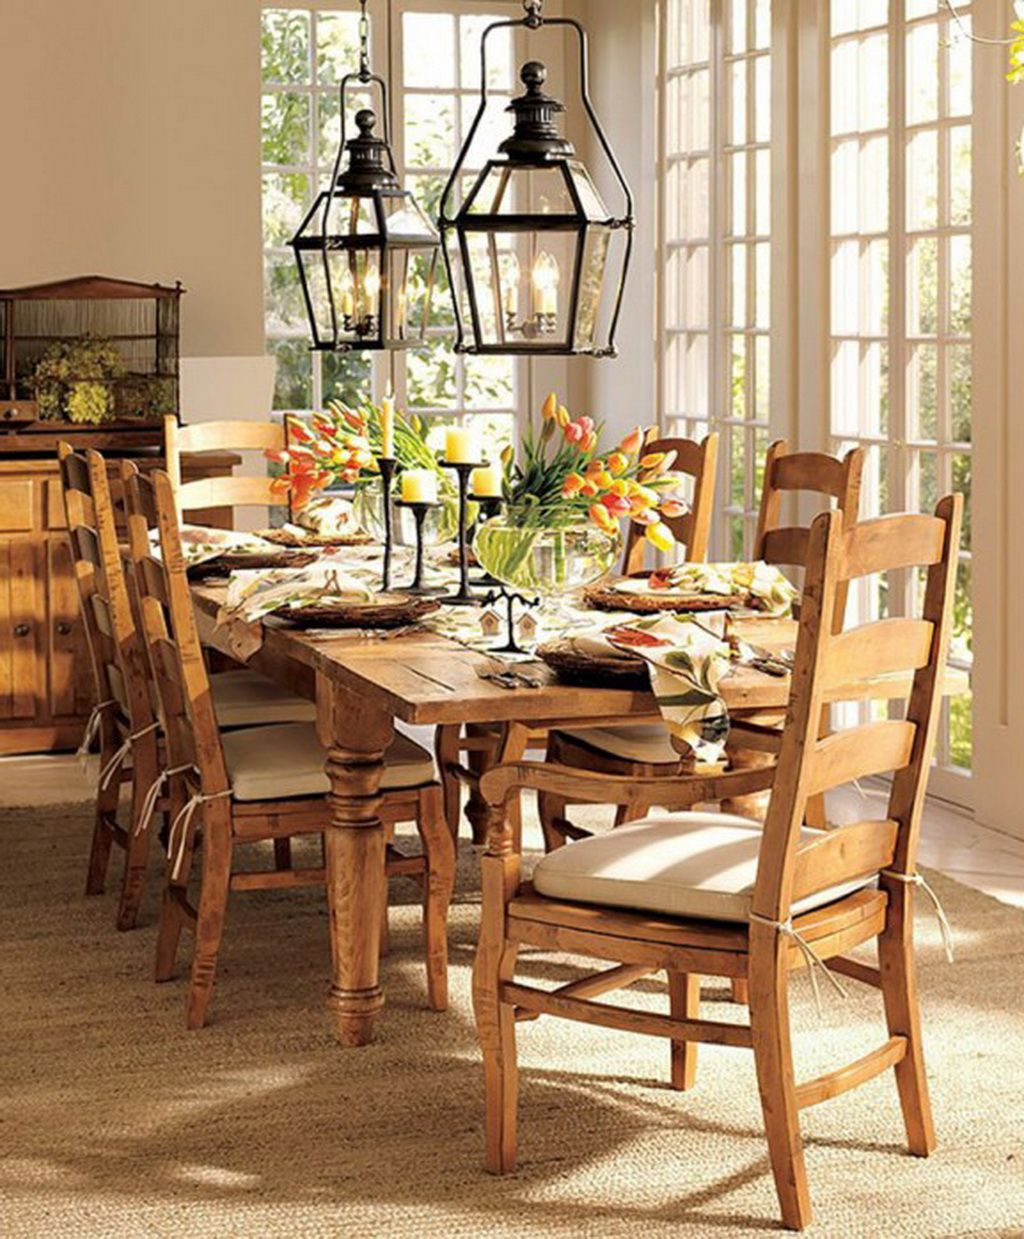 For Decorating Dining Room Table 1000 Images About Dining Room On Pinterest Dining Sets Bakers